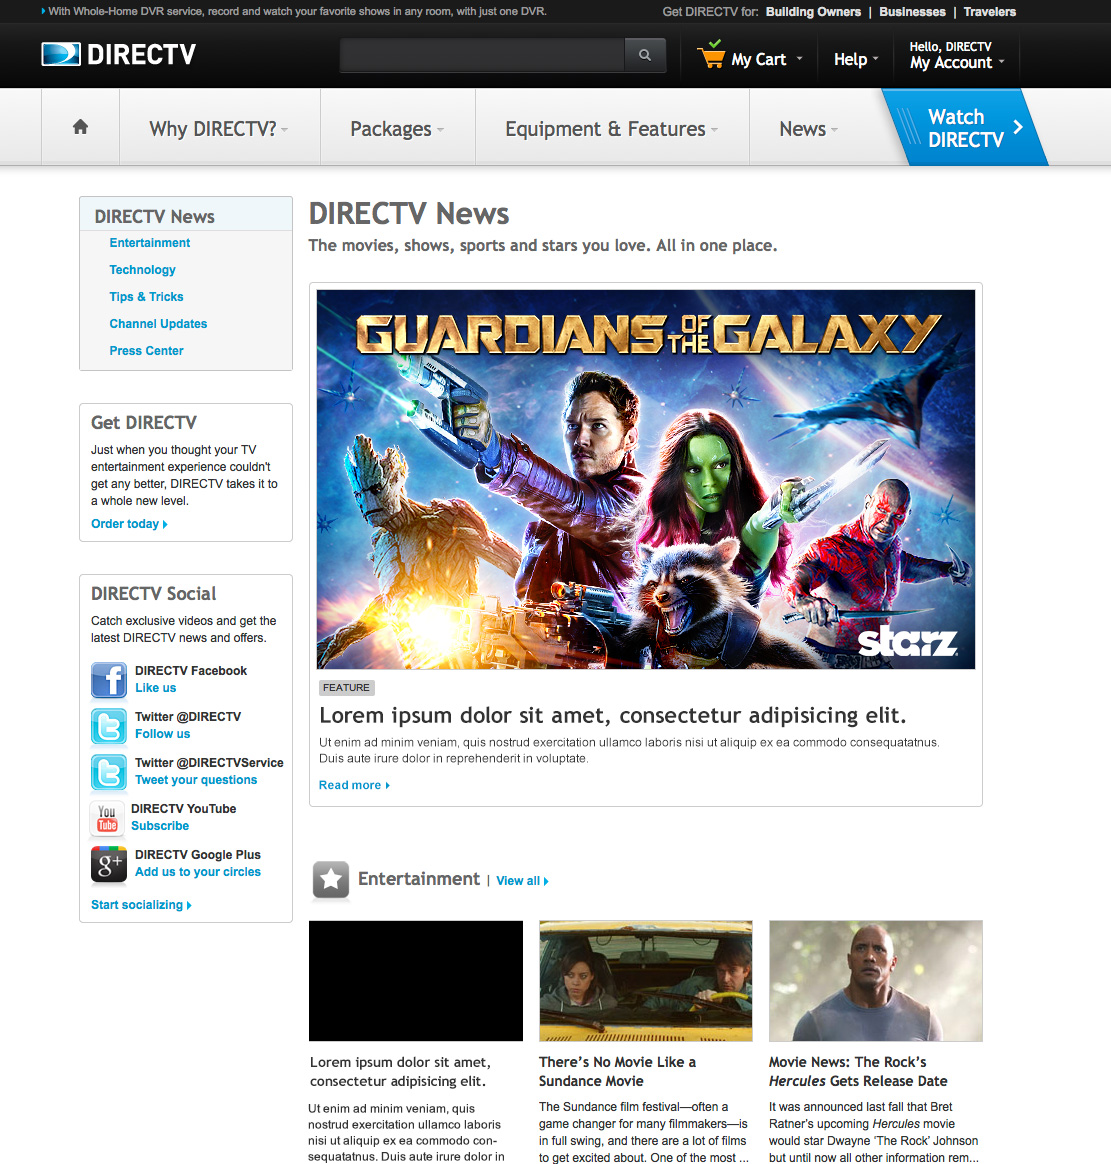 DIRECTV Guardians of The Galaxy